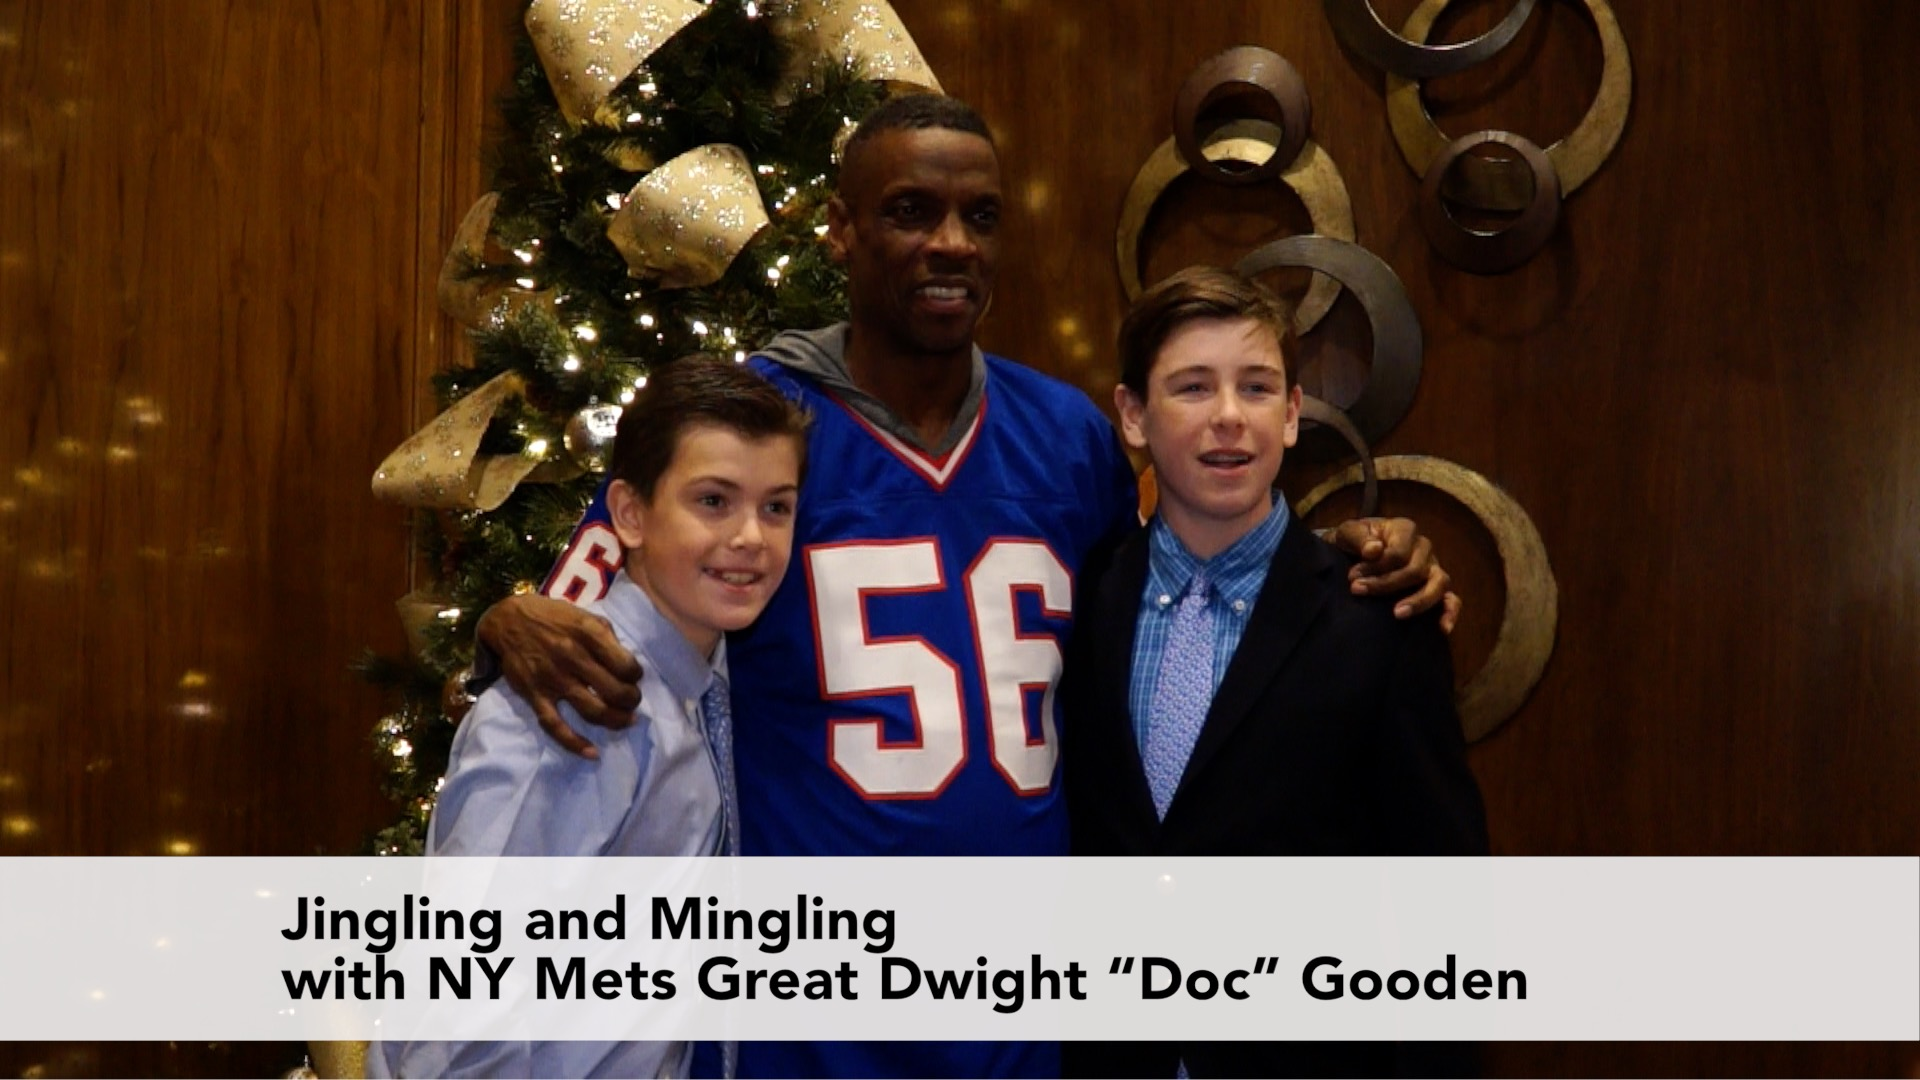 Jingle and Mingle with Doc Gooden at The Garden City Hotel